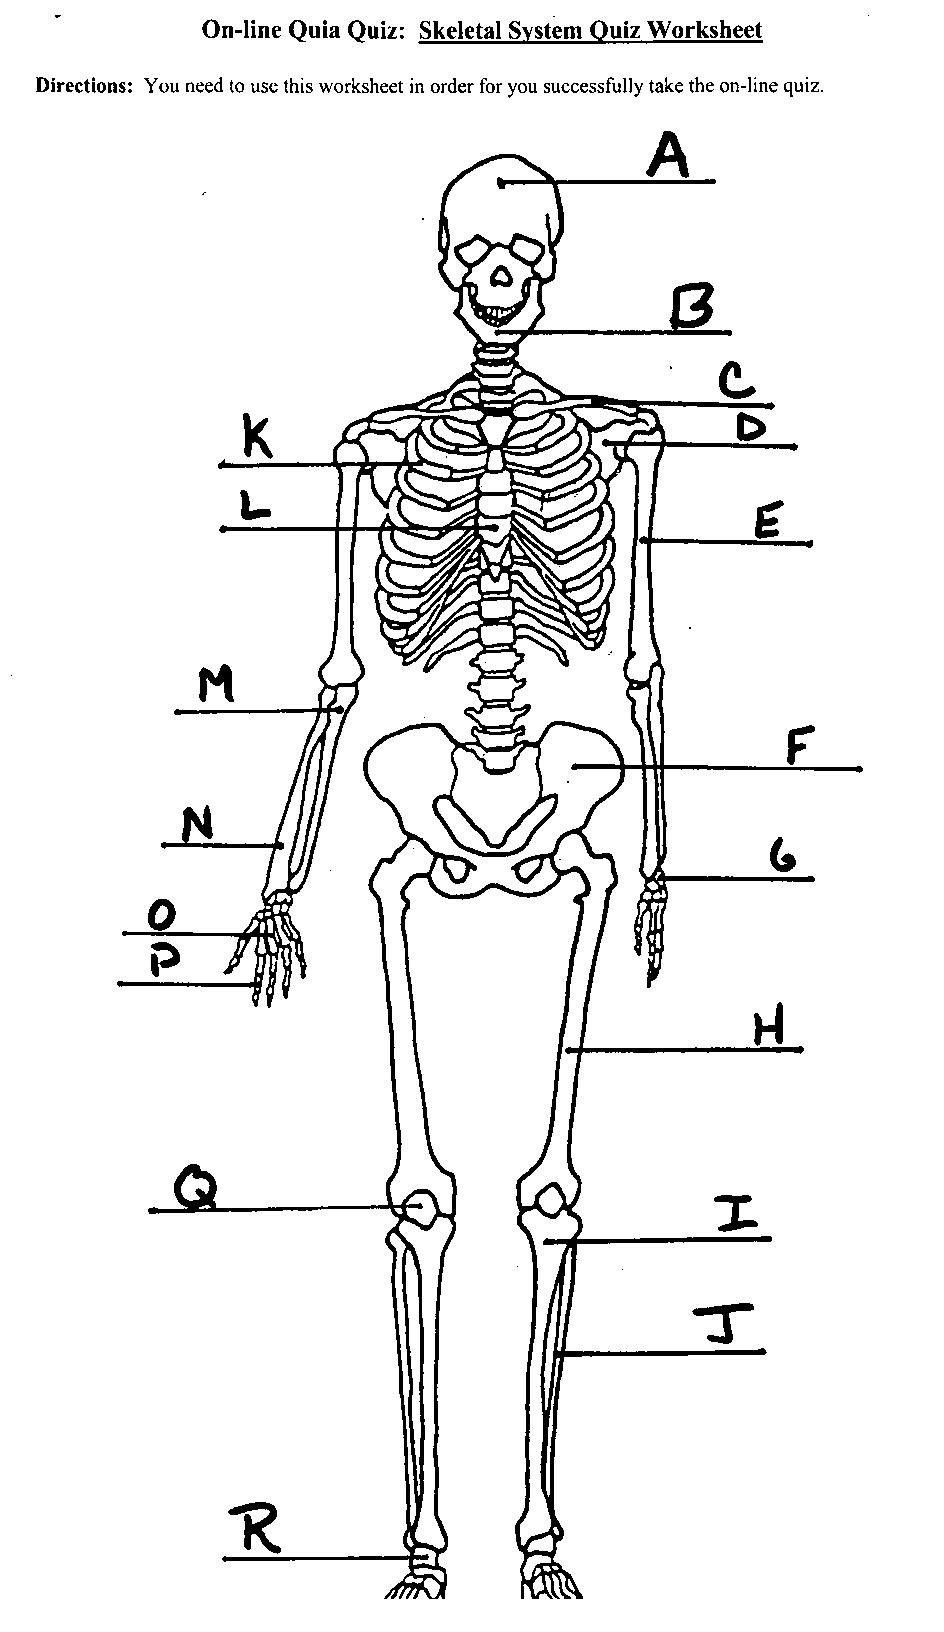 hight resolution of unlabeled human skeleton diagram unlabeled human skeleton diagram blank skeleton diagram front and back 1